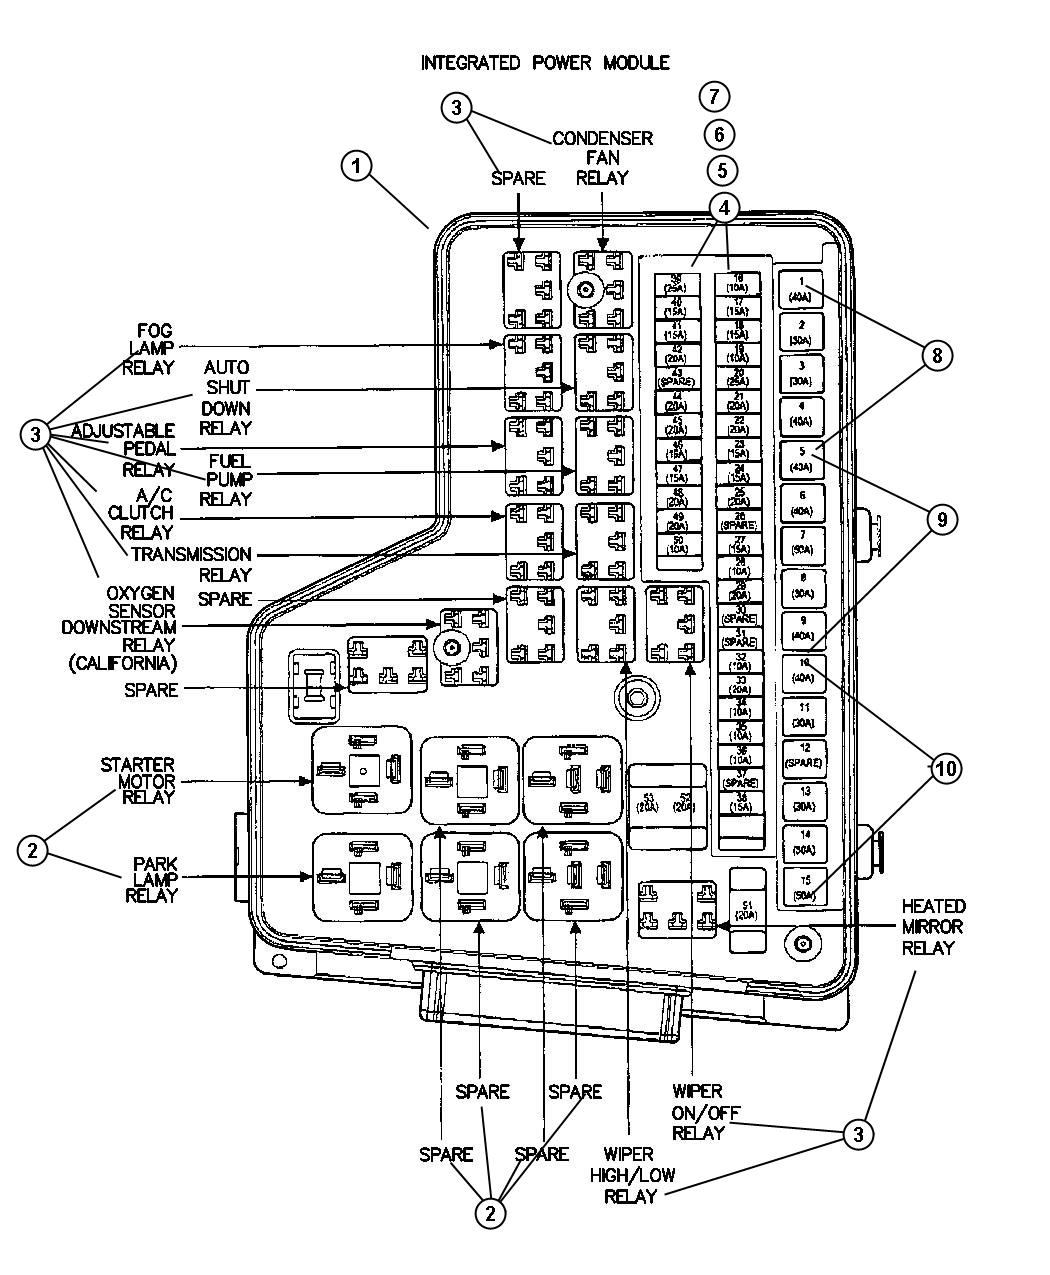 00i63485 2002 ram 1500 won't start!!! page 2 truck forum 2003 dodge ram fuse diagram at eliteediting.co